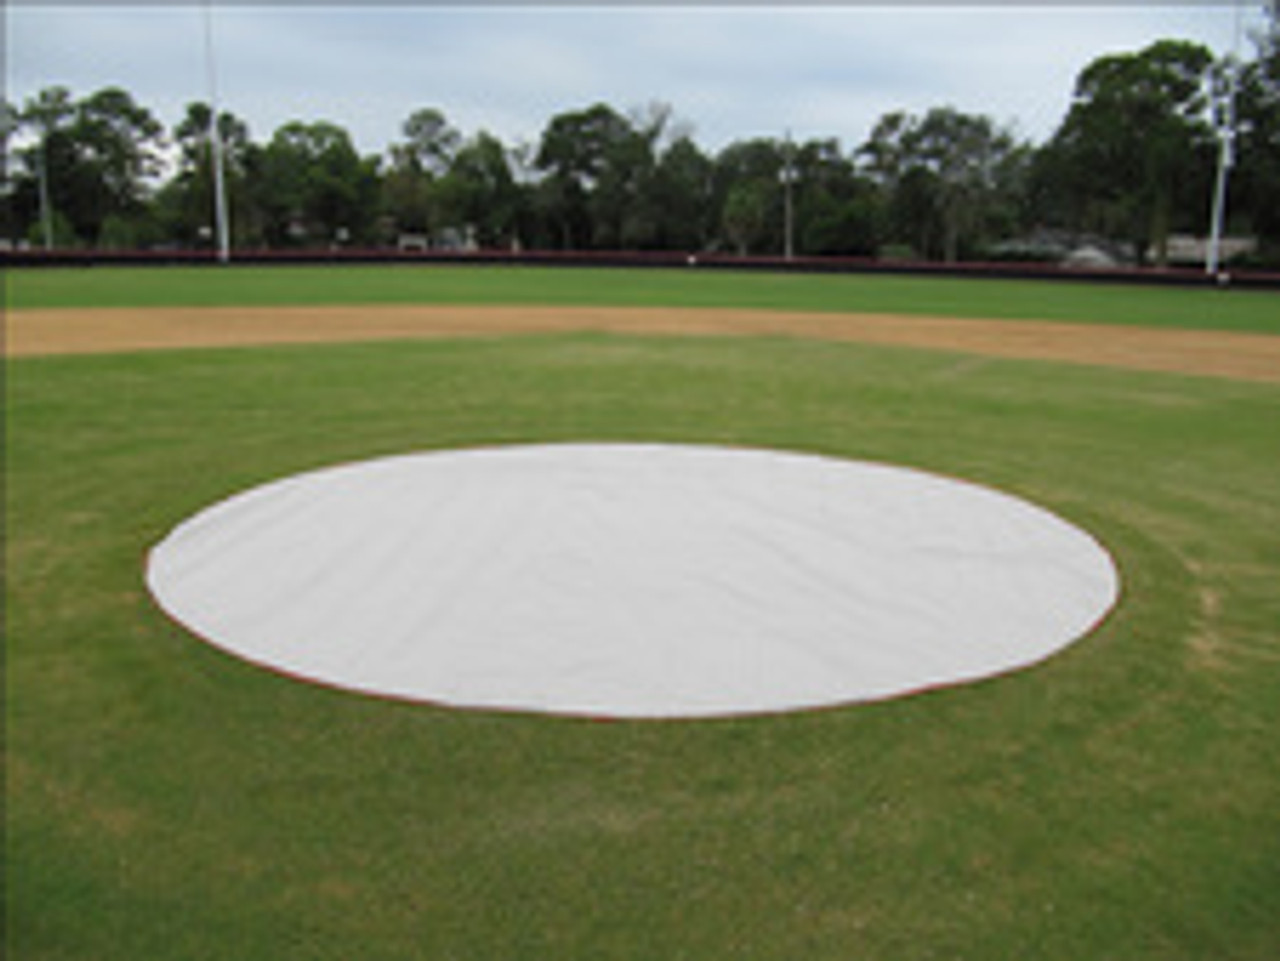 Baseball Field Covers Weighted 6 oz. 12' Diameter Mound & Base Protector